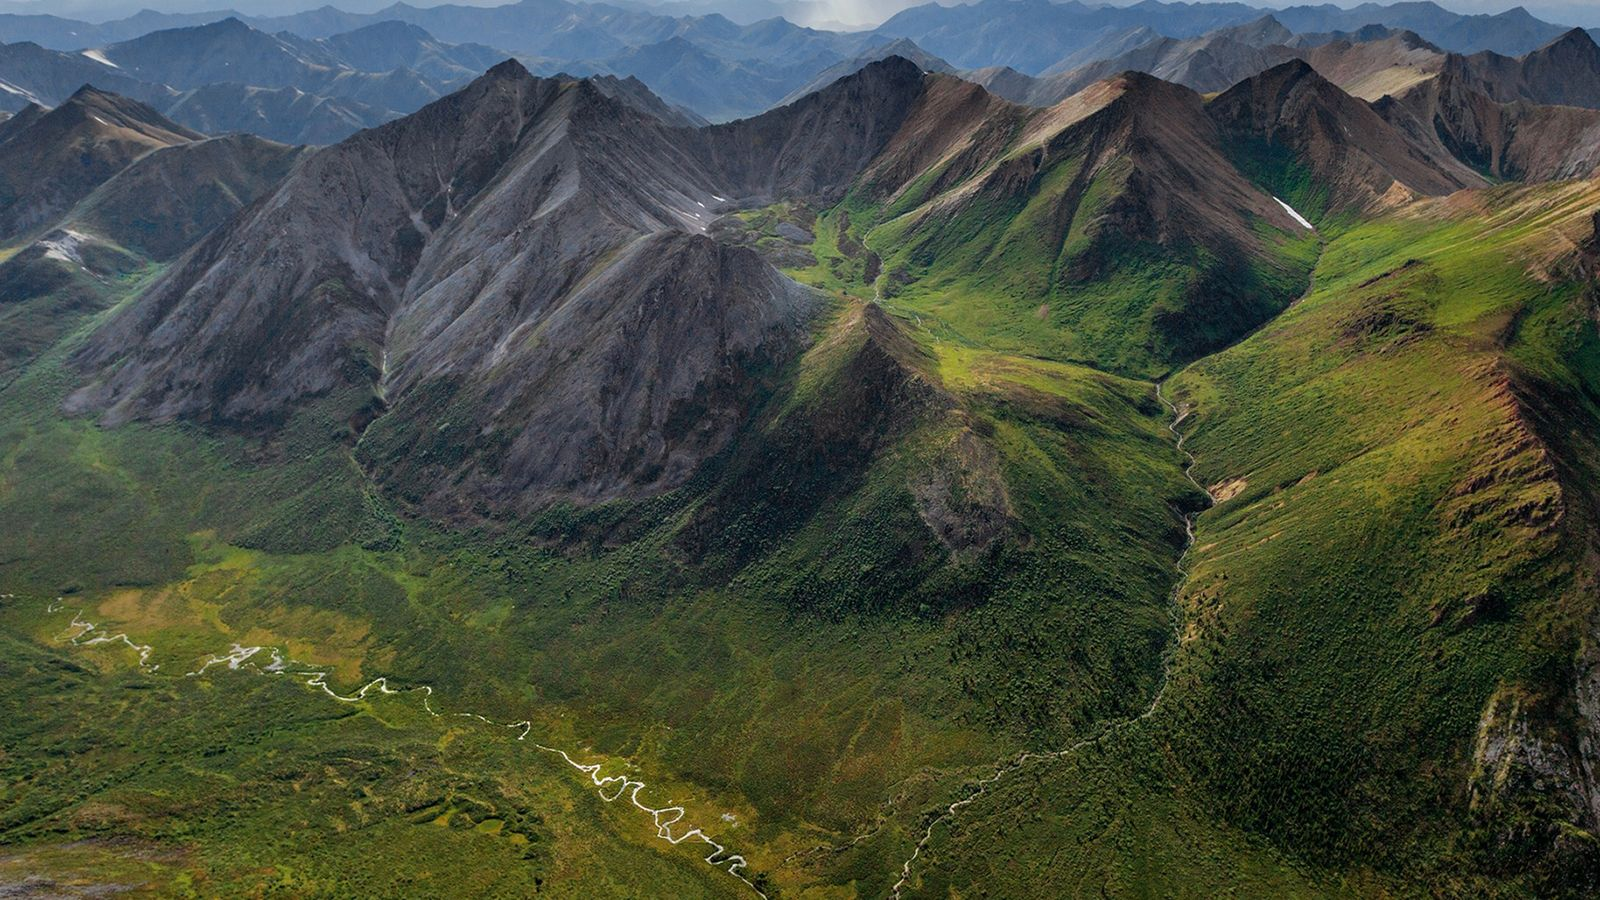 The wild heart of the Yukon Territory, the Peel Watershed is rich in rugged peaks and ...